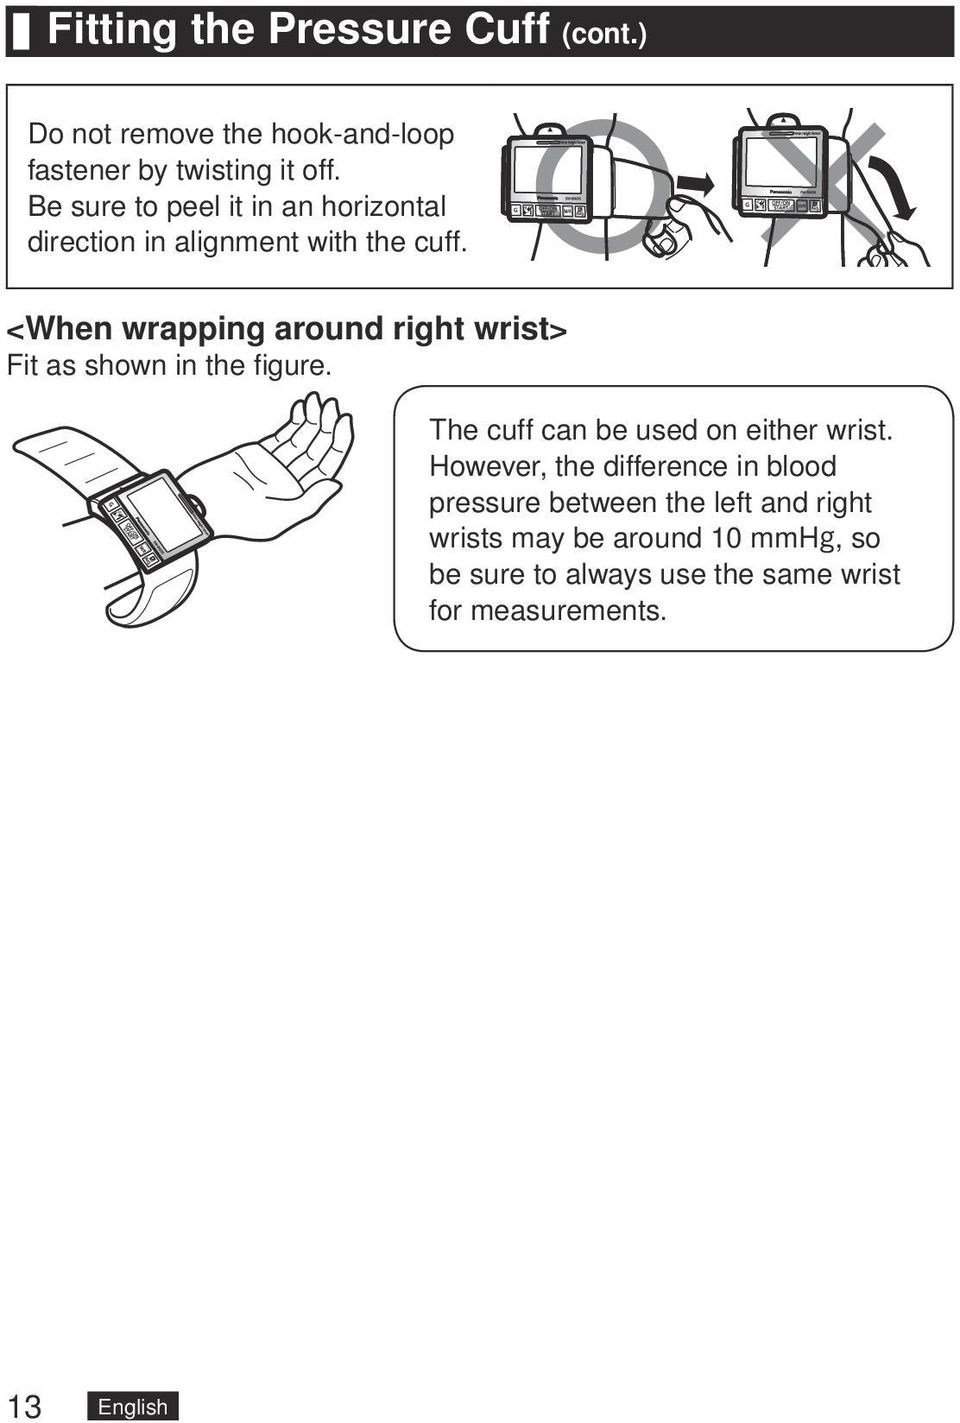 <When wrapping around right wrist> Fit as shown in the figure. The cuff can be used on either wrist.